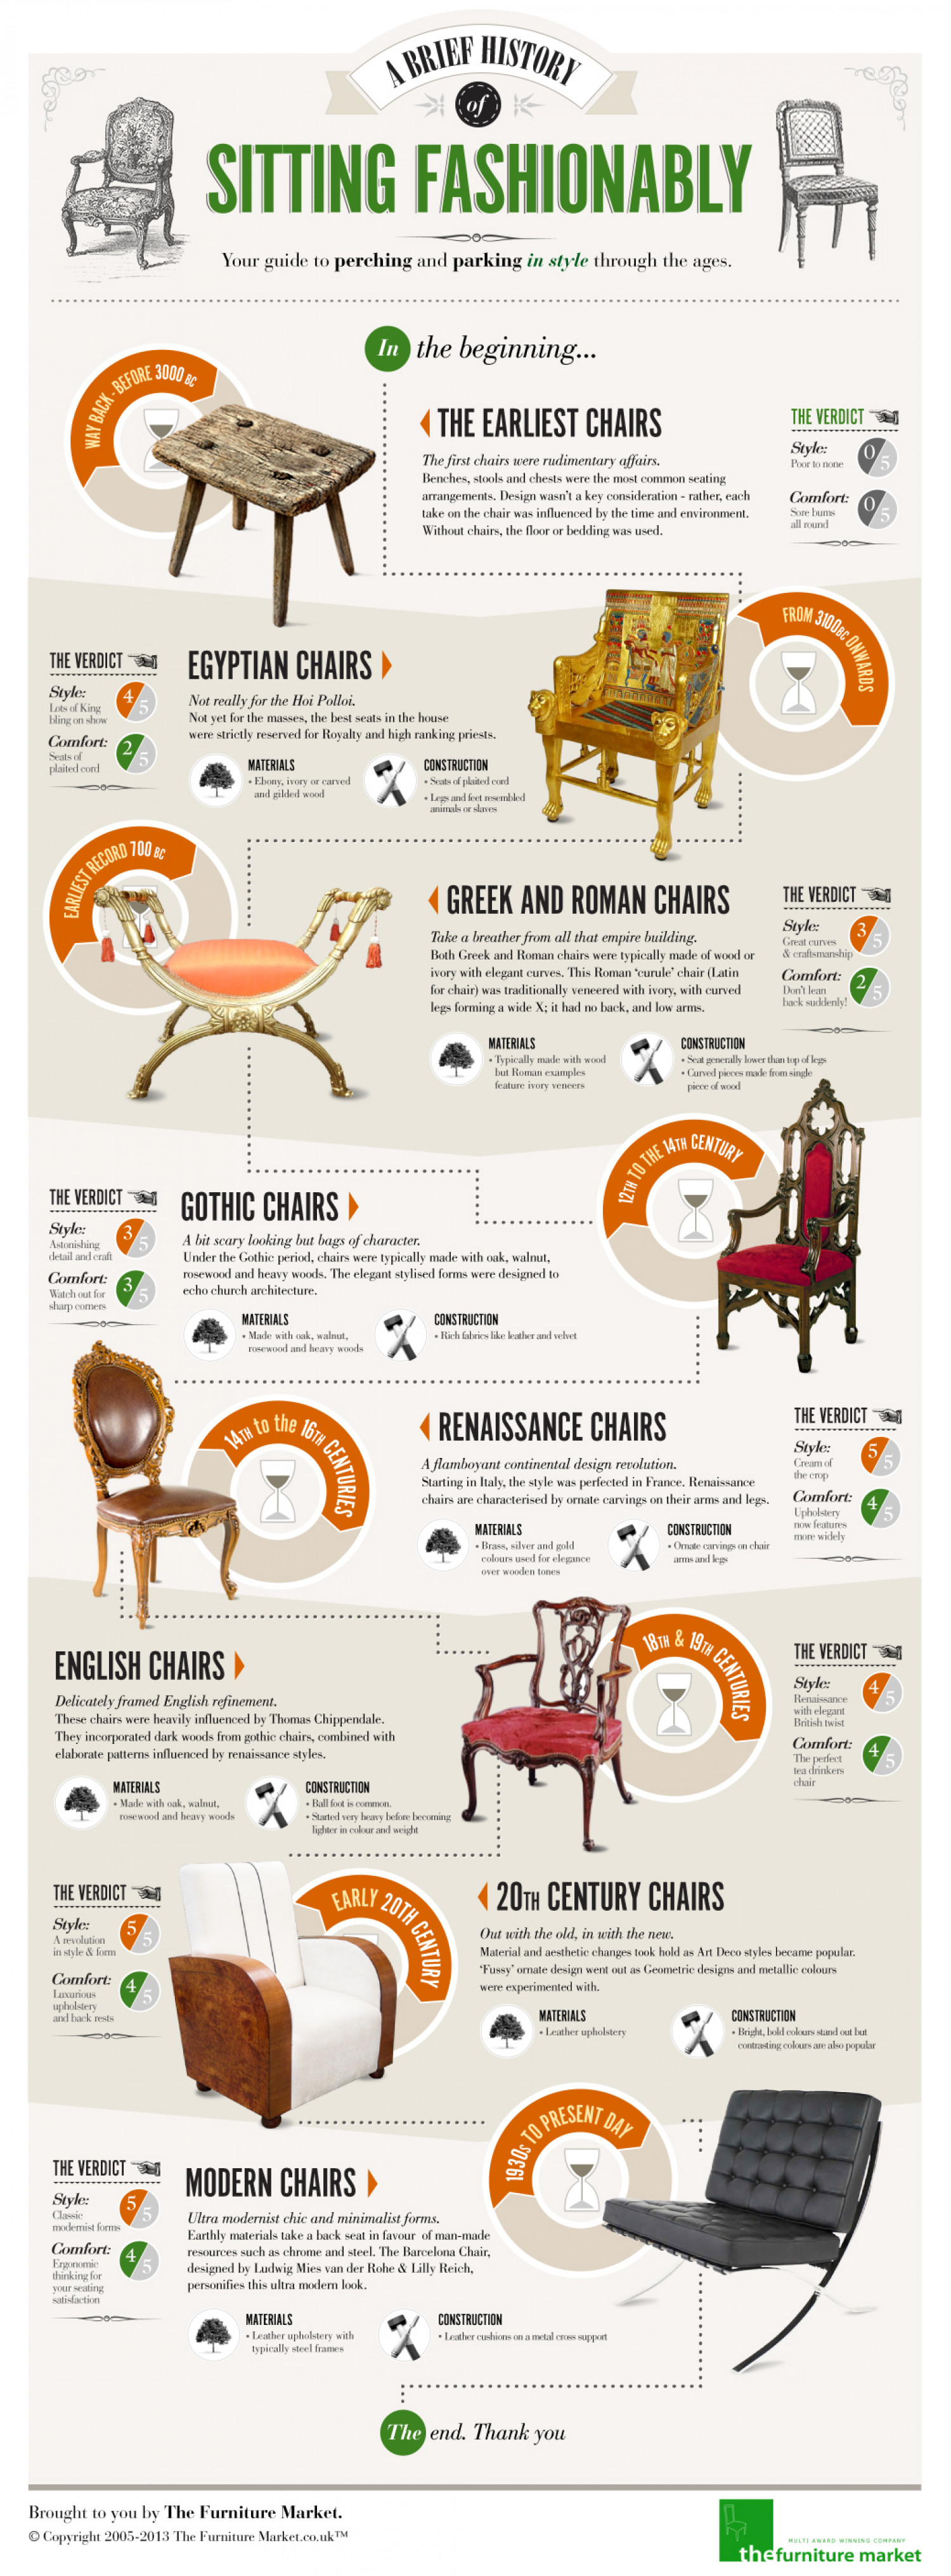 Sitting Fashionably Infographic